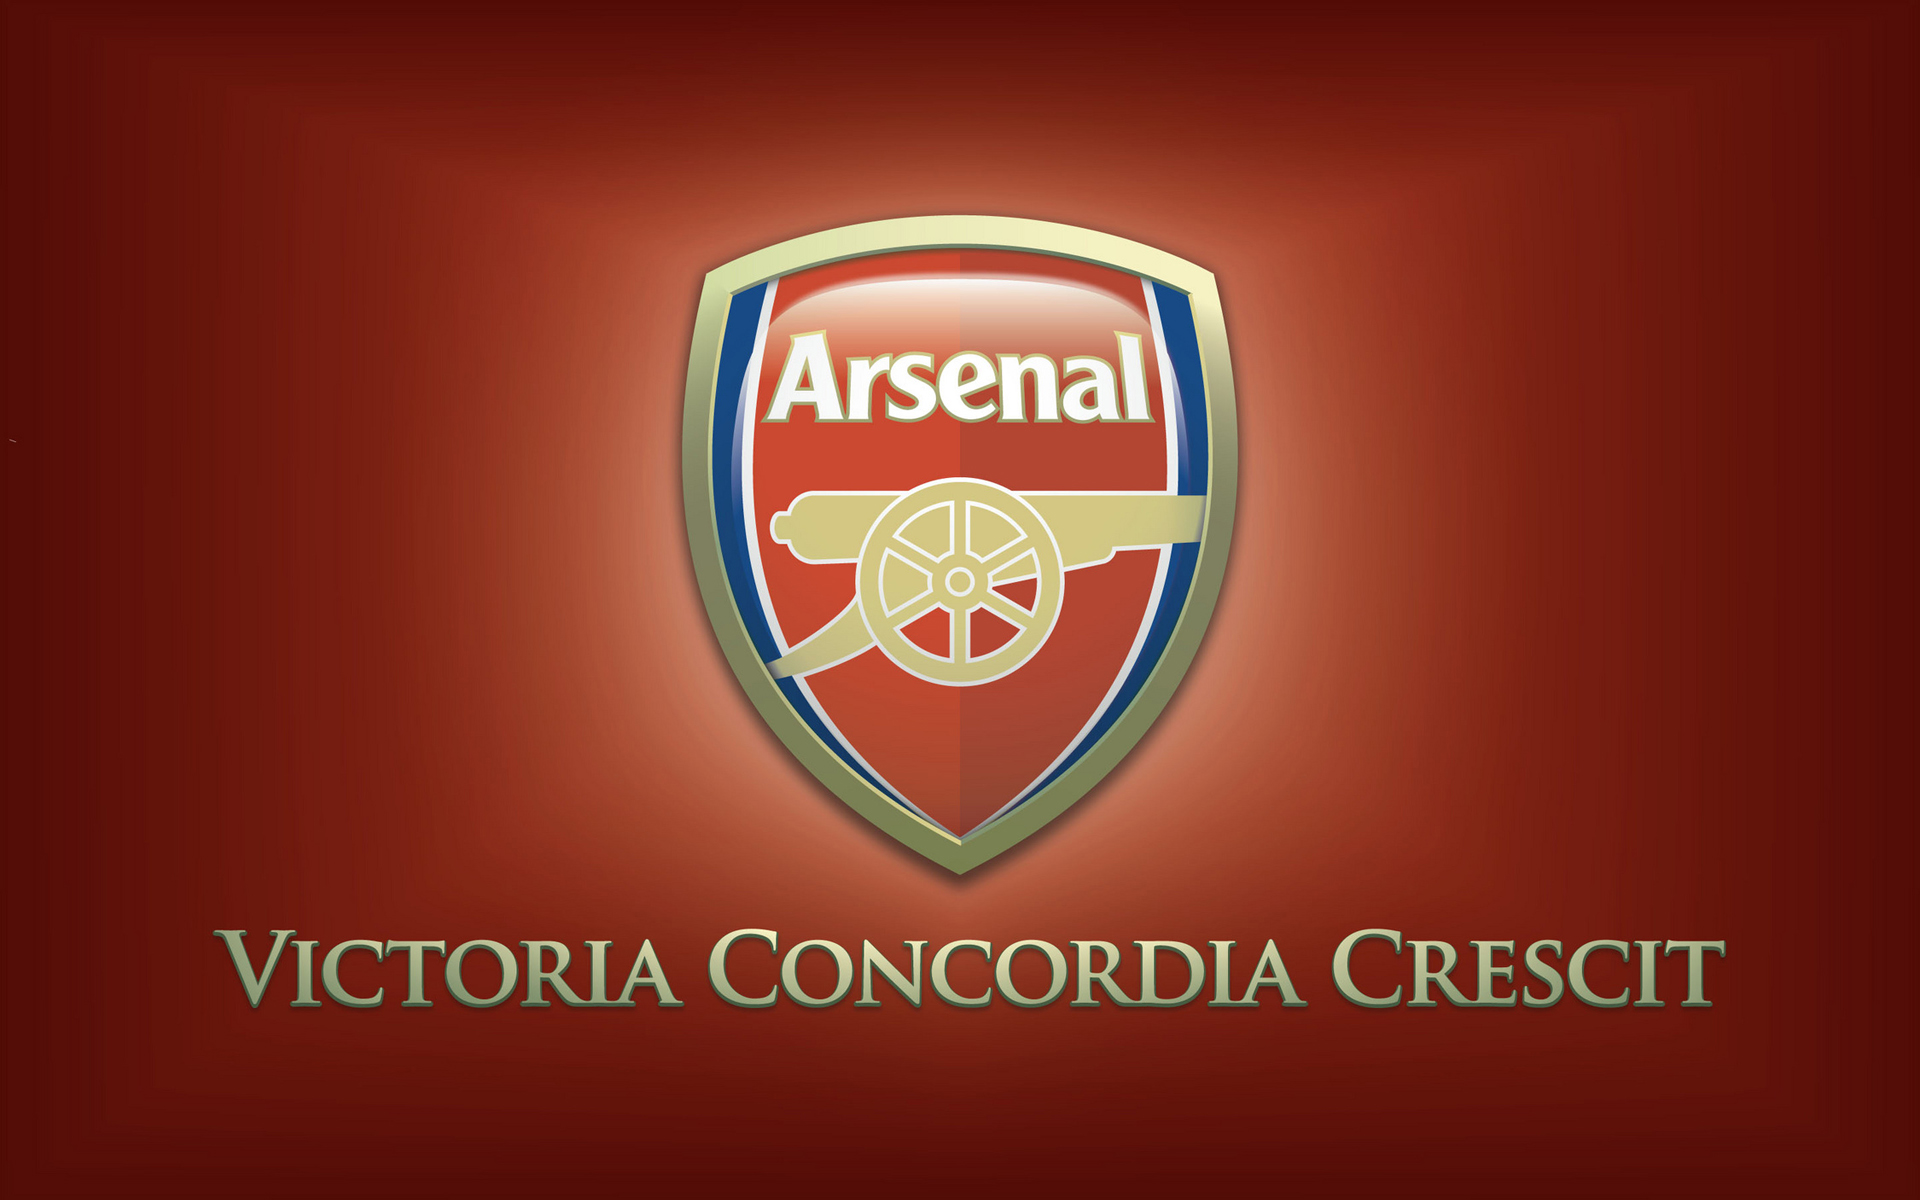 wallpaper.wiki-Photos-Arsenal-Logo-Wallpapers-PIC-WPE0012186